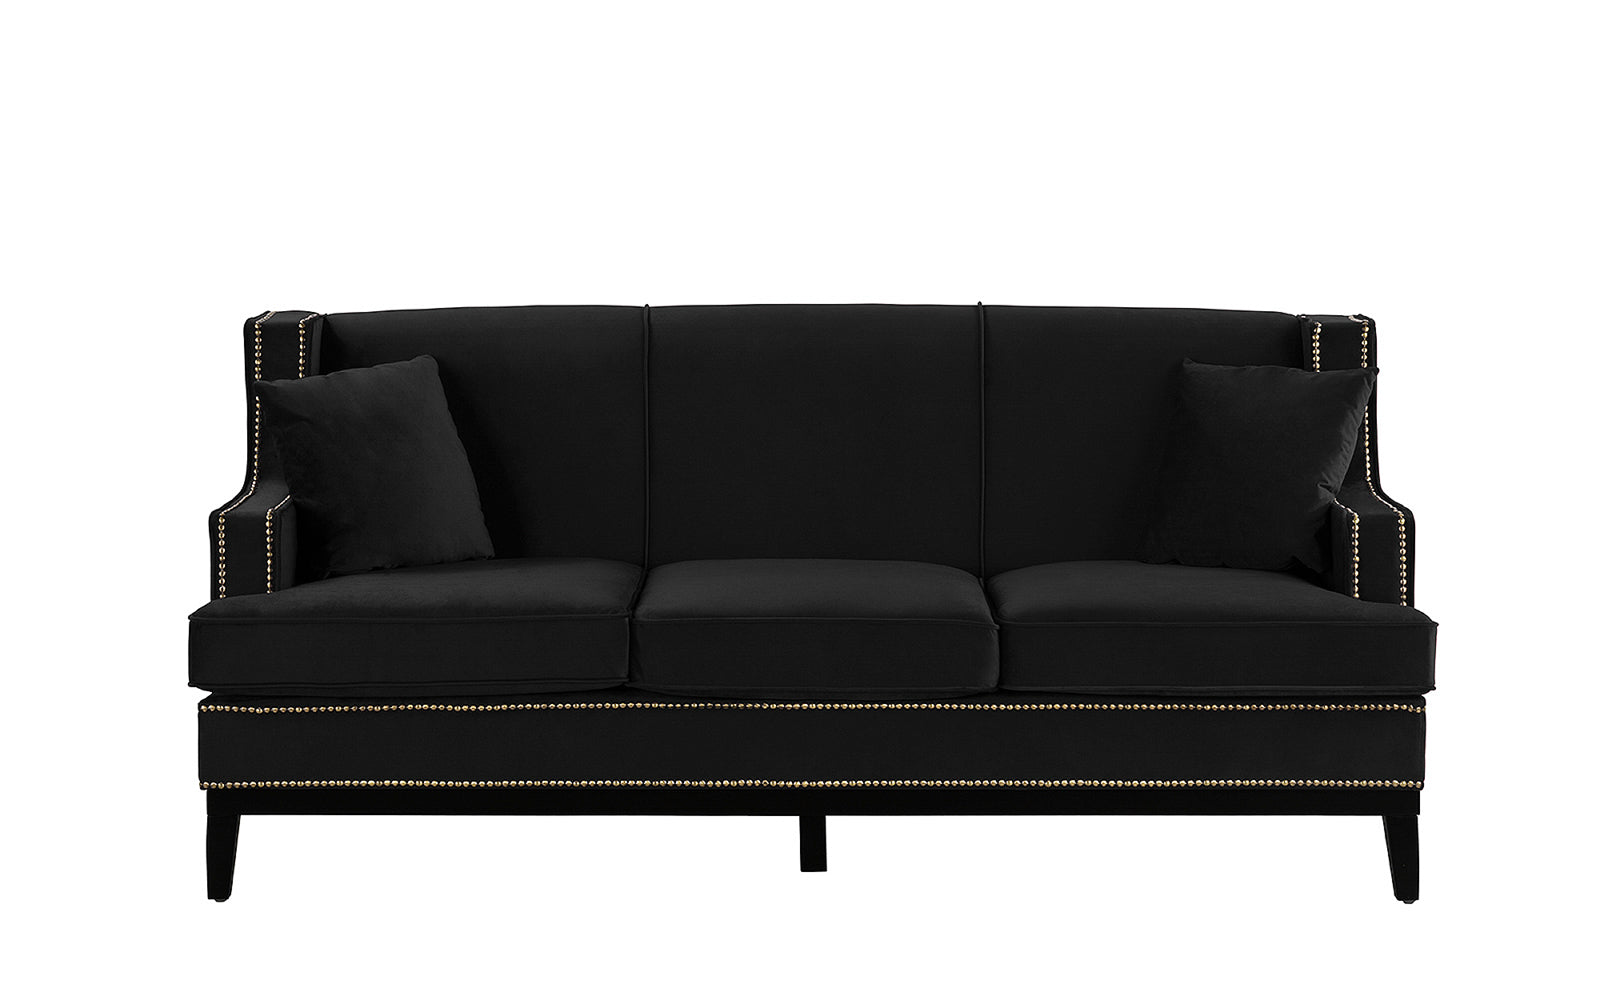 Cheap Couches for Sale Online - Affordable Modern Sofas ...